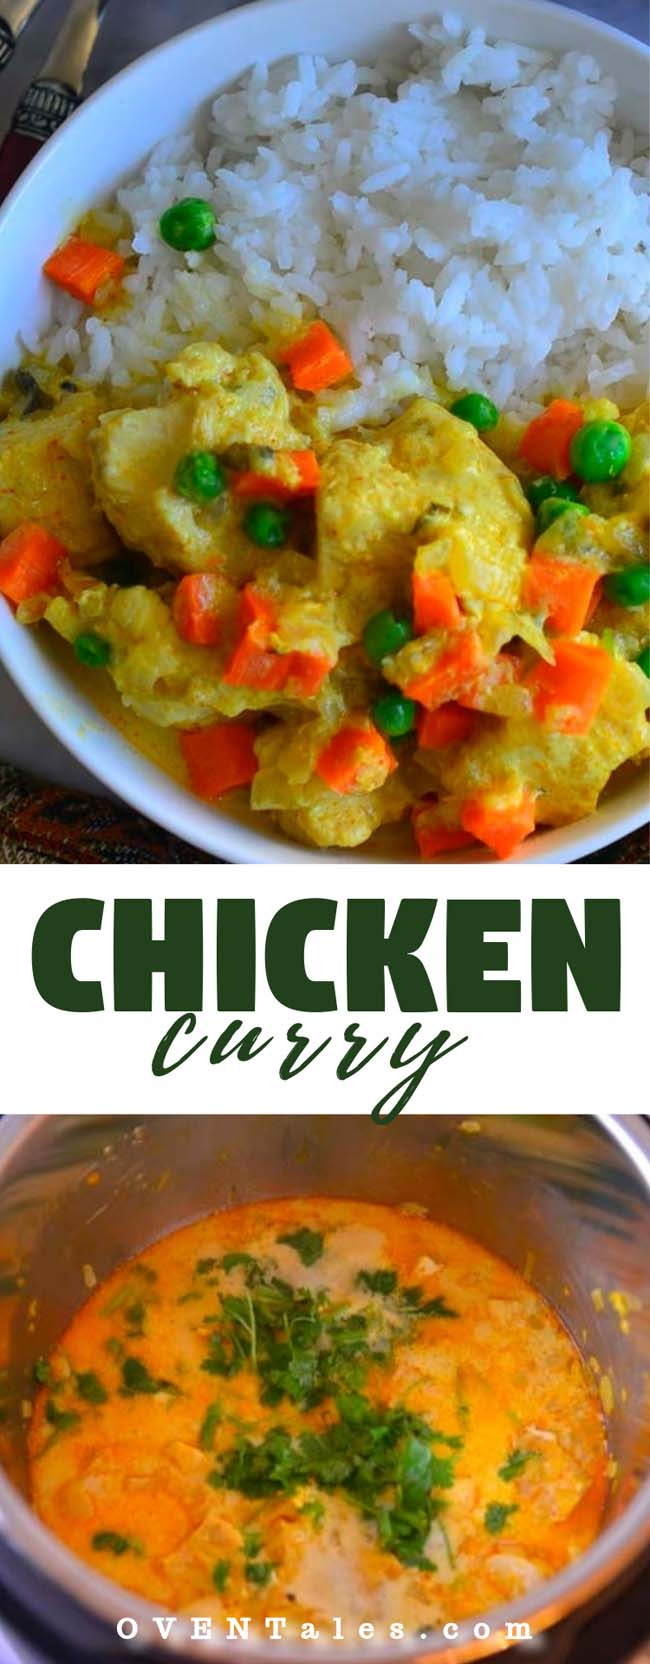 Easy Chicken Curry With Vegetables In Pressure Cooker